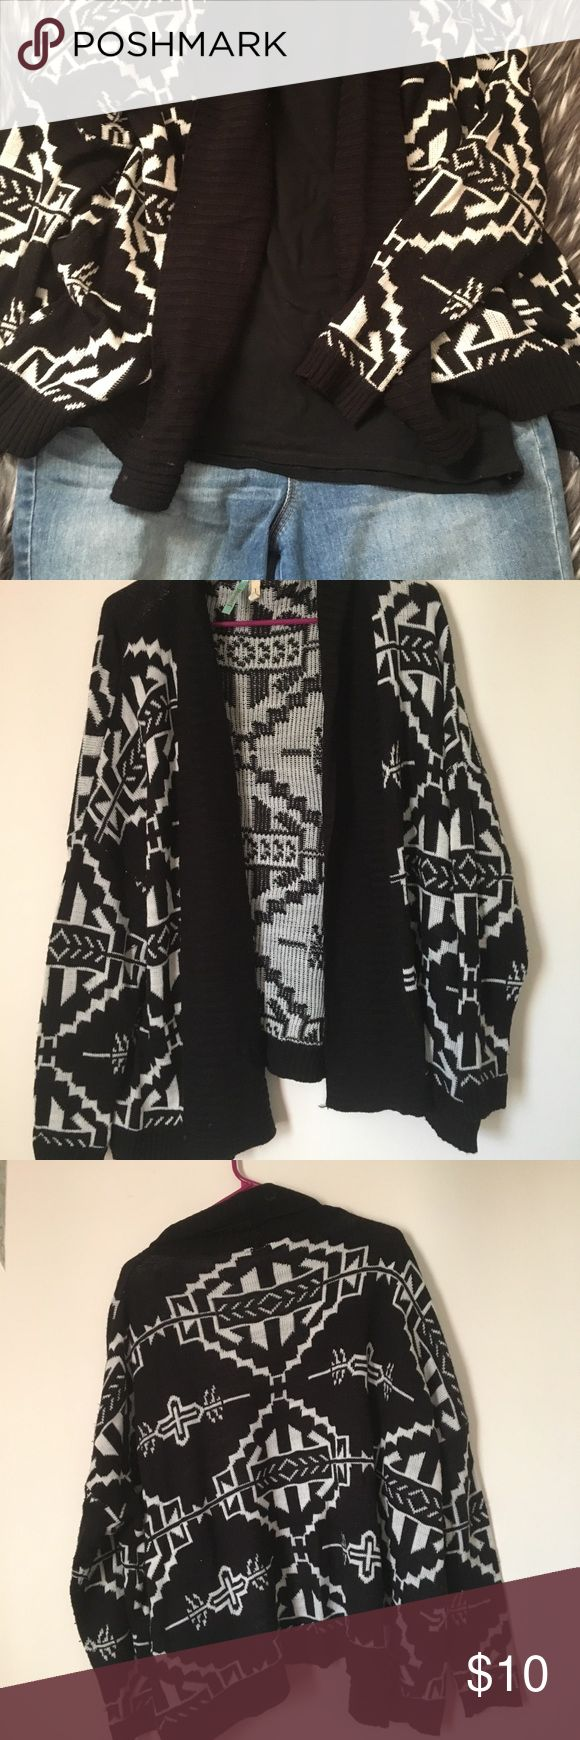 Aztec print cardigan Cute black and white Aztec print cardigan. Gently worn, nothing wrong. Soft and super cute with jeans or leggings and a basic tee/tank 😊 Forever 21 Sweaters Cardigans